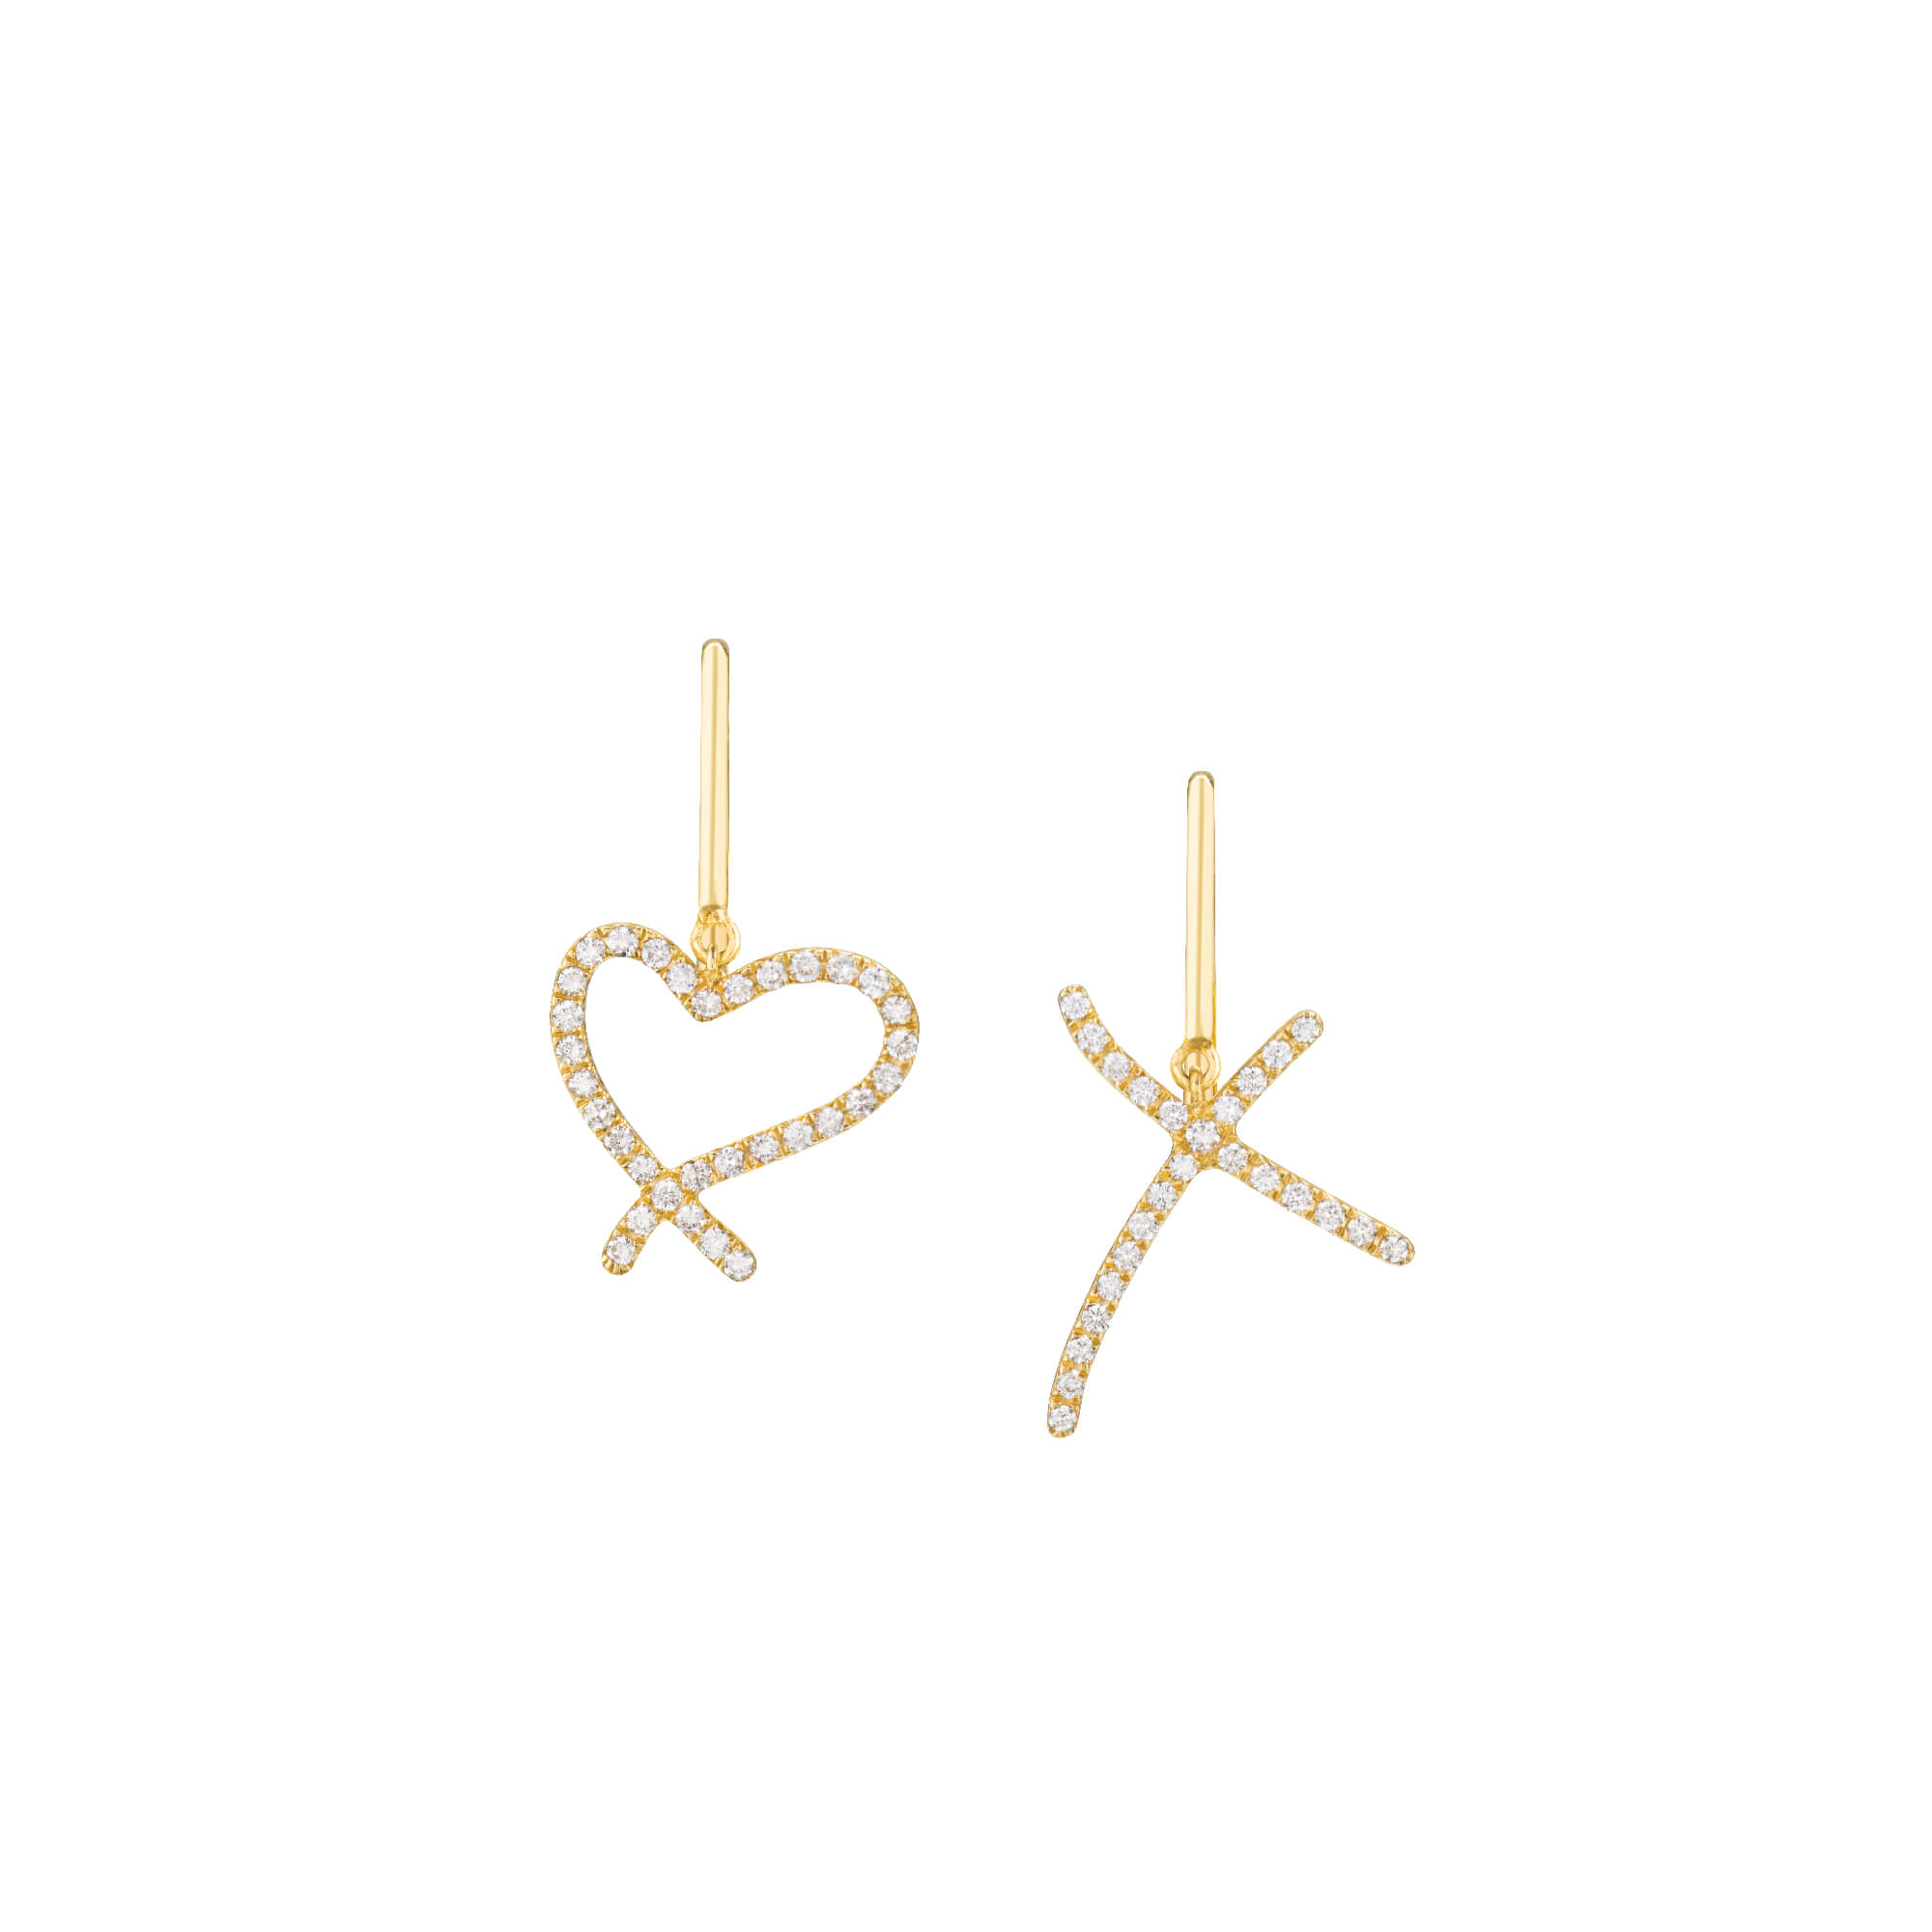 Neon Yellow Gold Hear and Kiss Earrings | I Promise To Love You